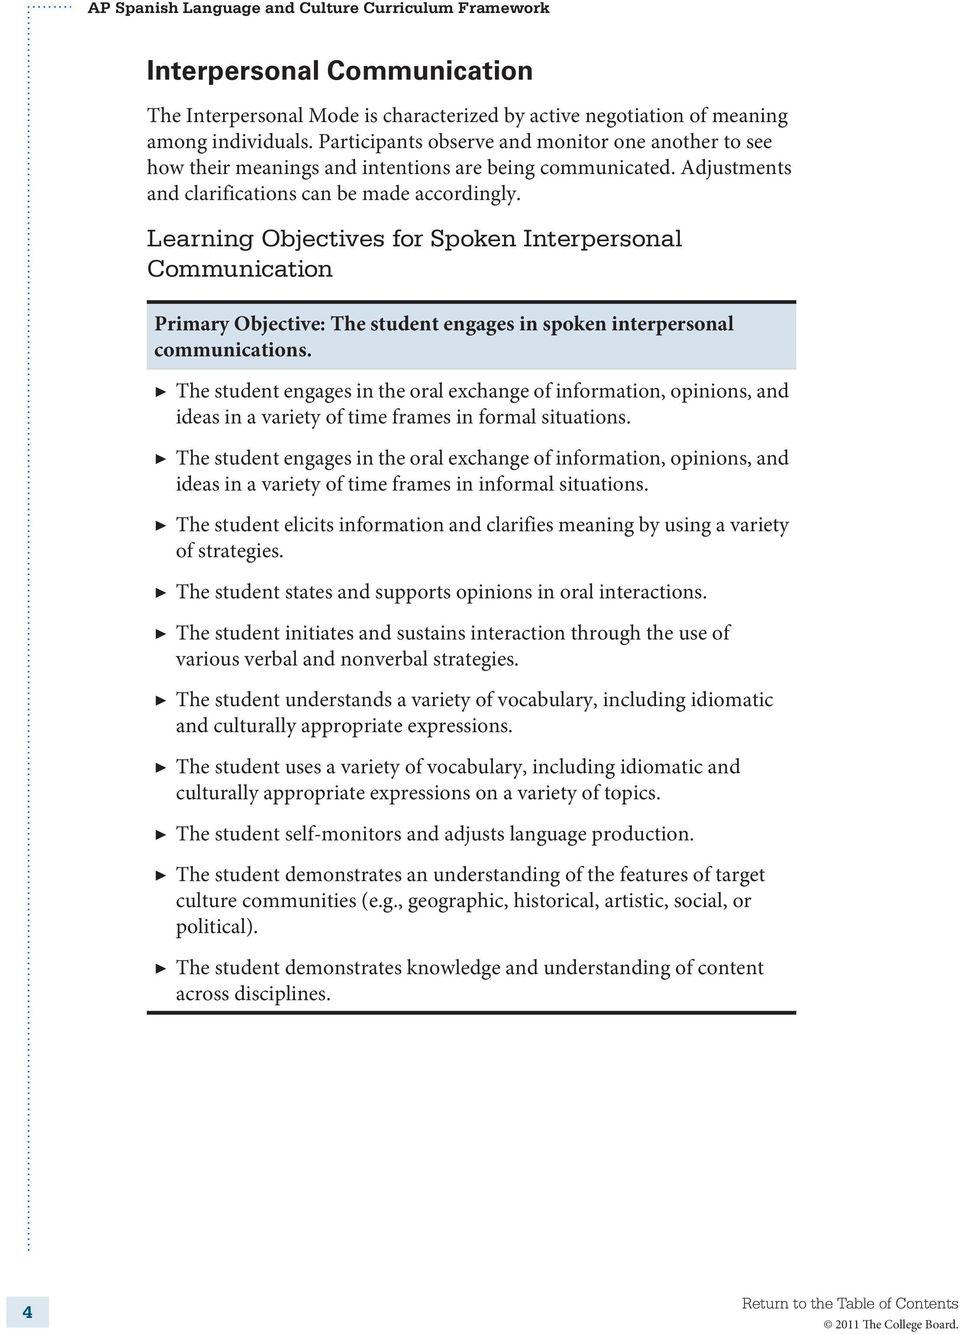 Learning Objectives for Spoken Interpersonal Communication Primary Objective: The student engages in spoken interpersonal communications.